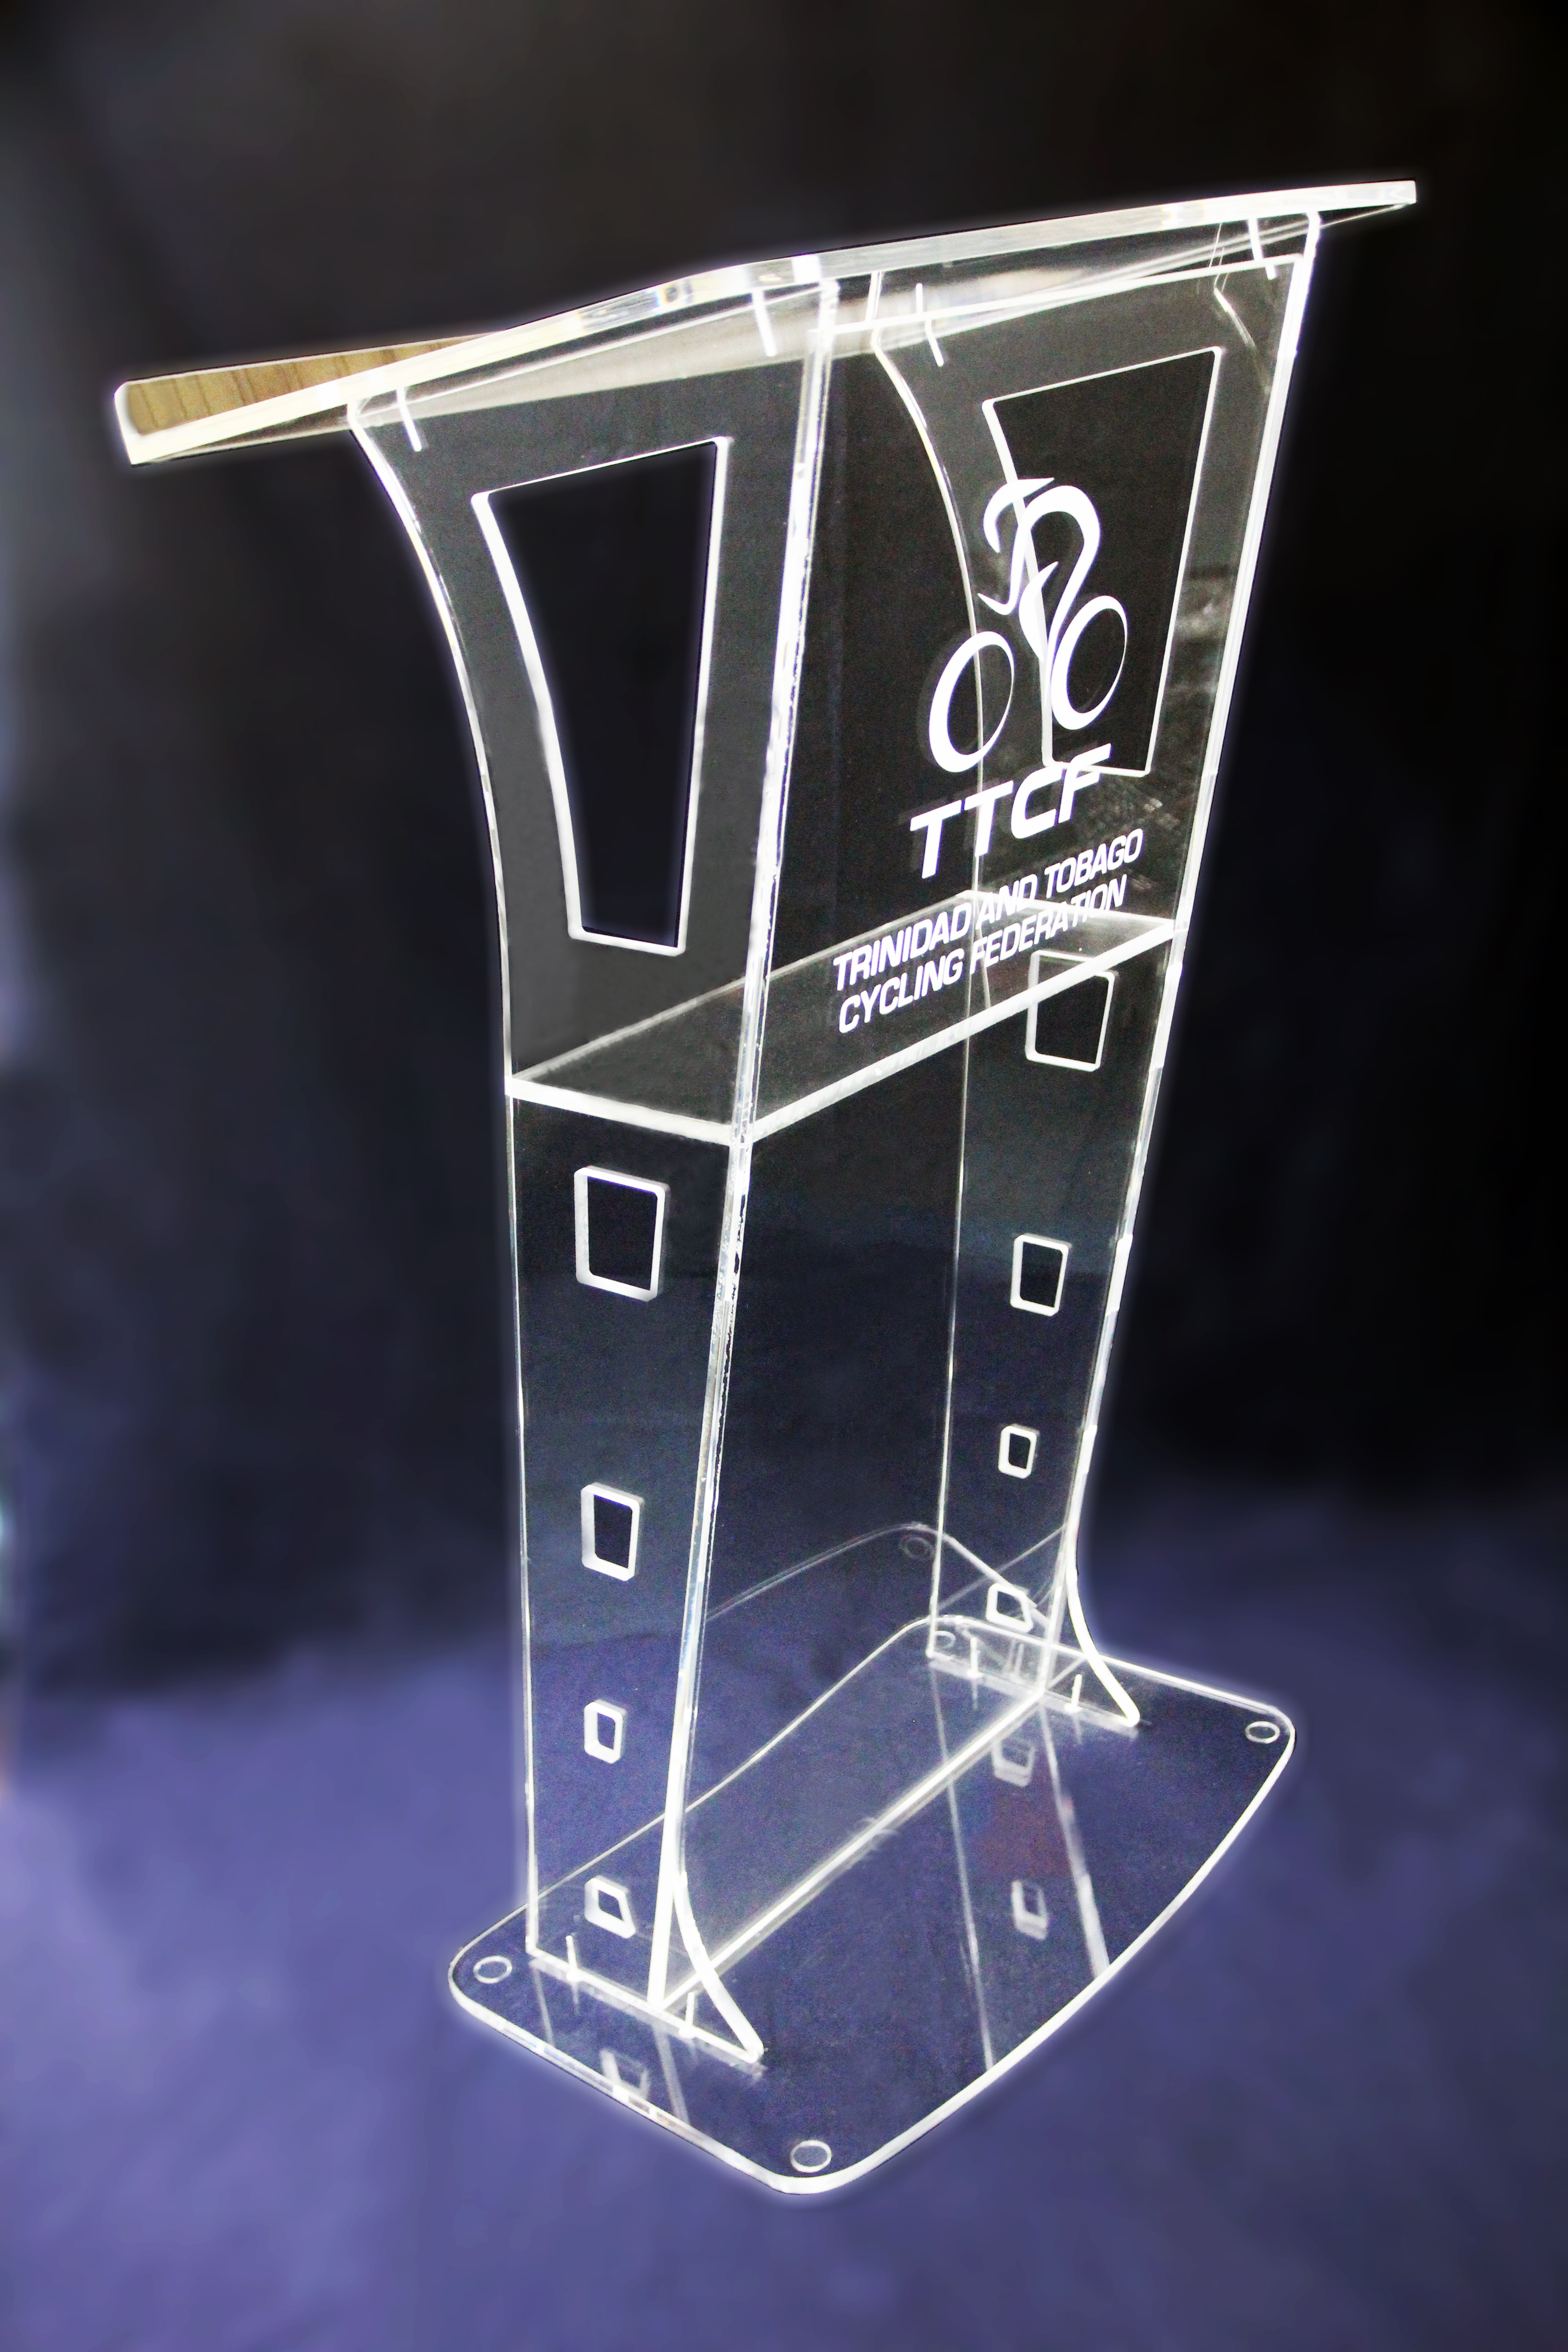 Lasercuts Ltd - Specialists in Quality Engraving On Almost